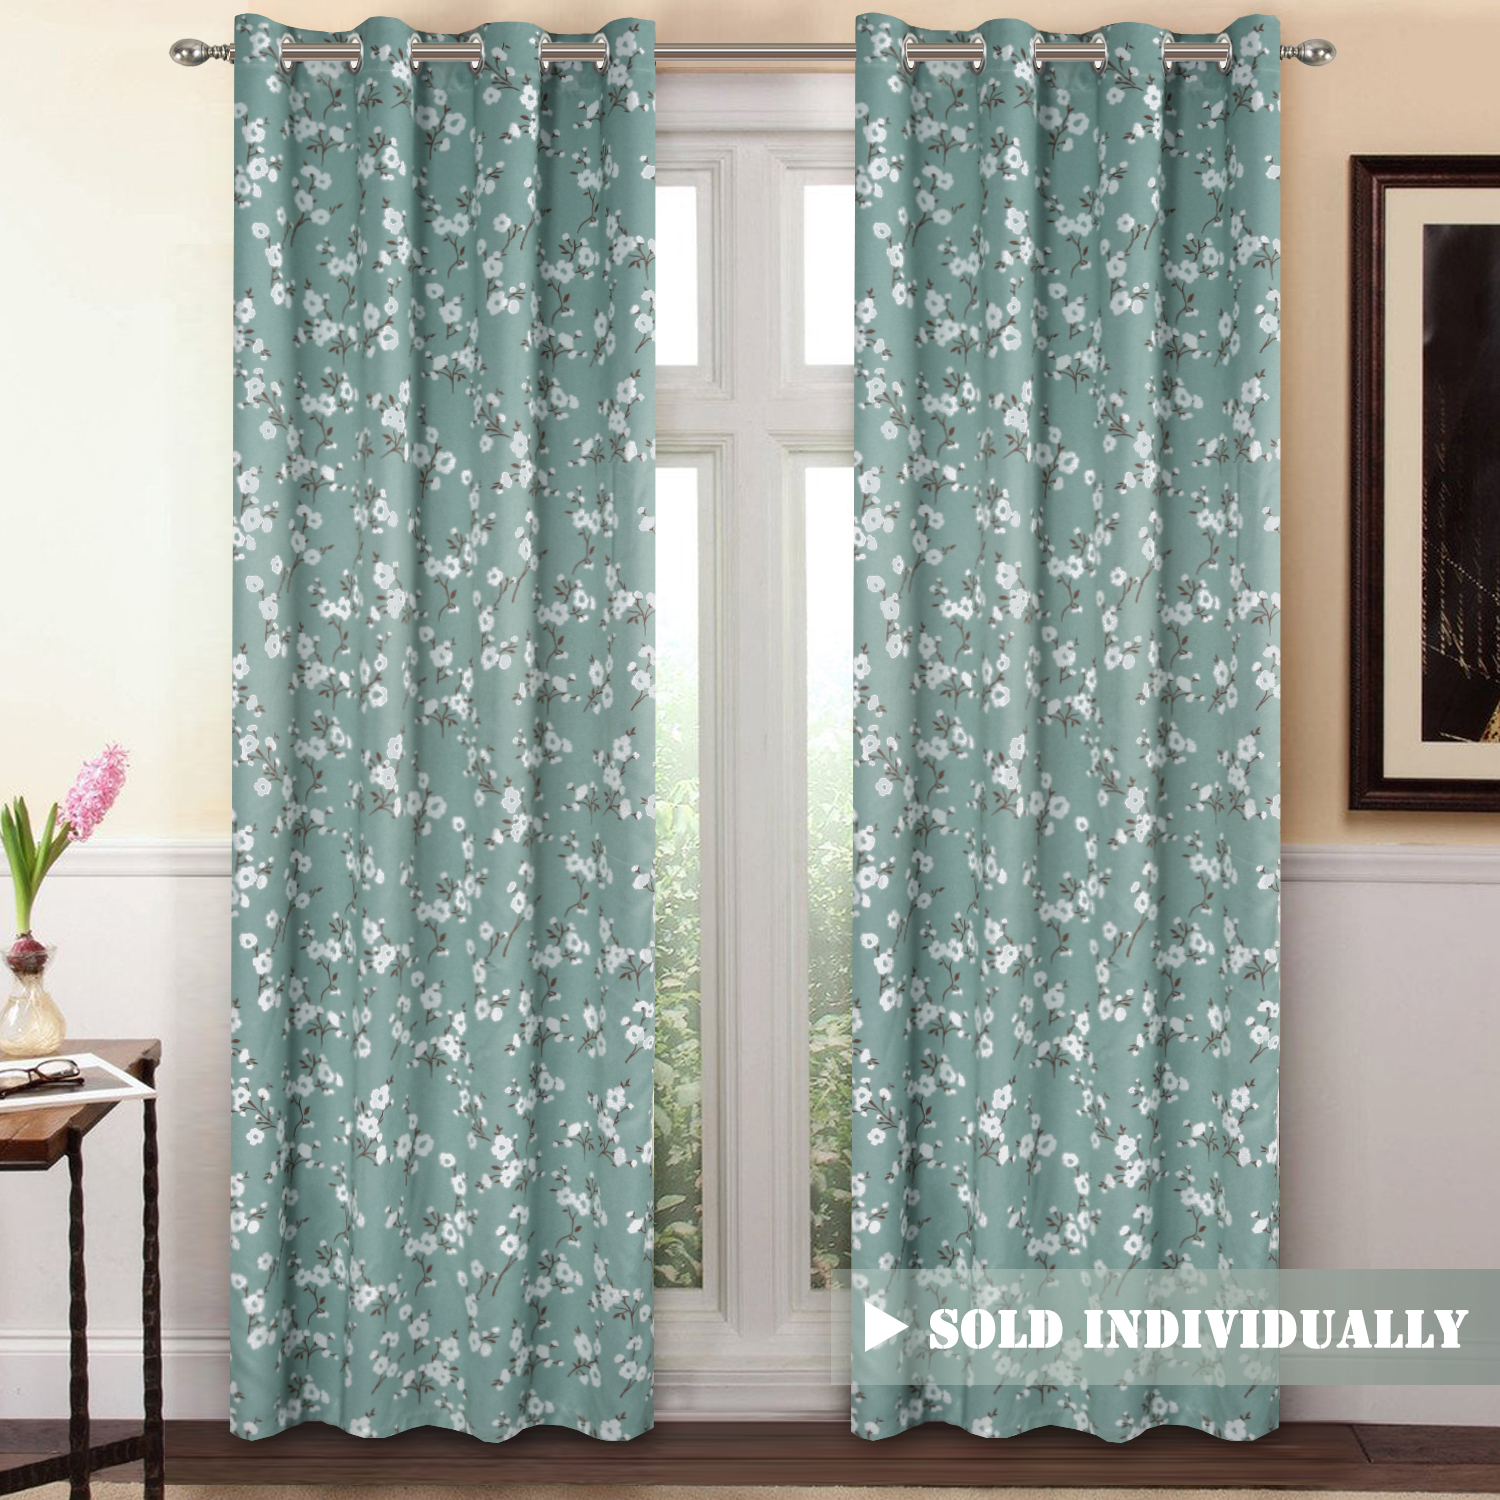 Ready Made Thermal Curtains H Versailtex Traditional Sakura Floral Pattern Room Darkening Thermal Insulated Blackout Curtains For Bedroom Grommet Top Set Of 1 Panel W52 X L96